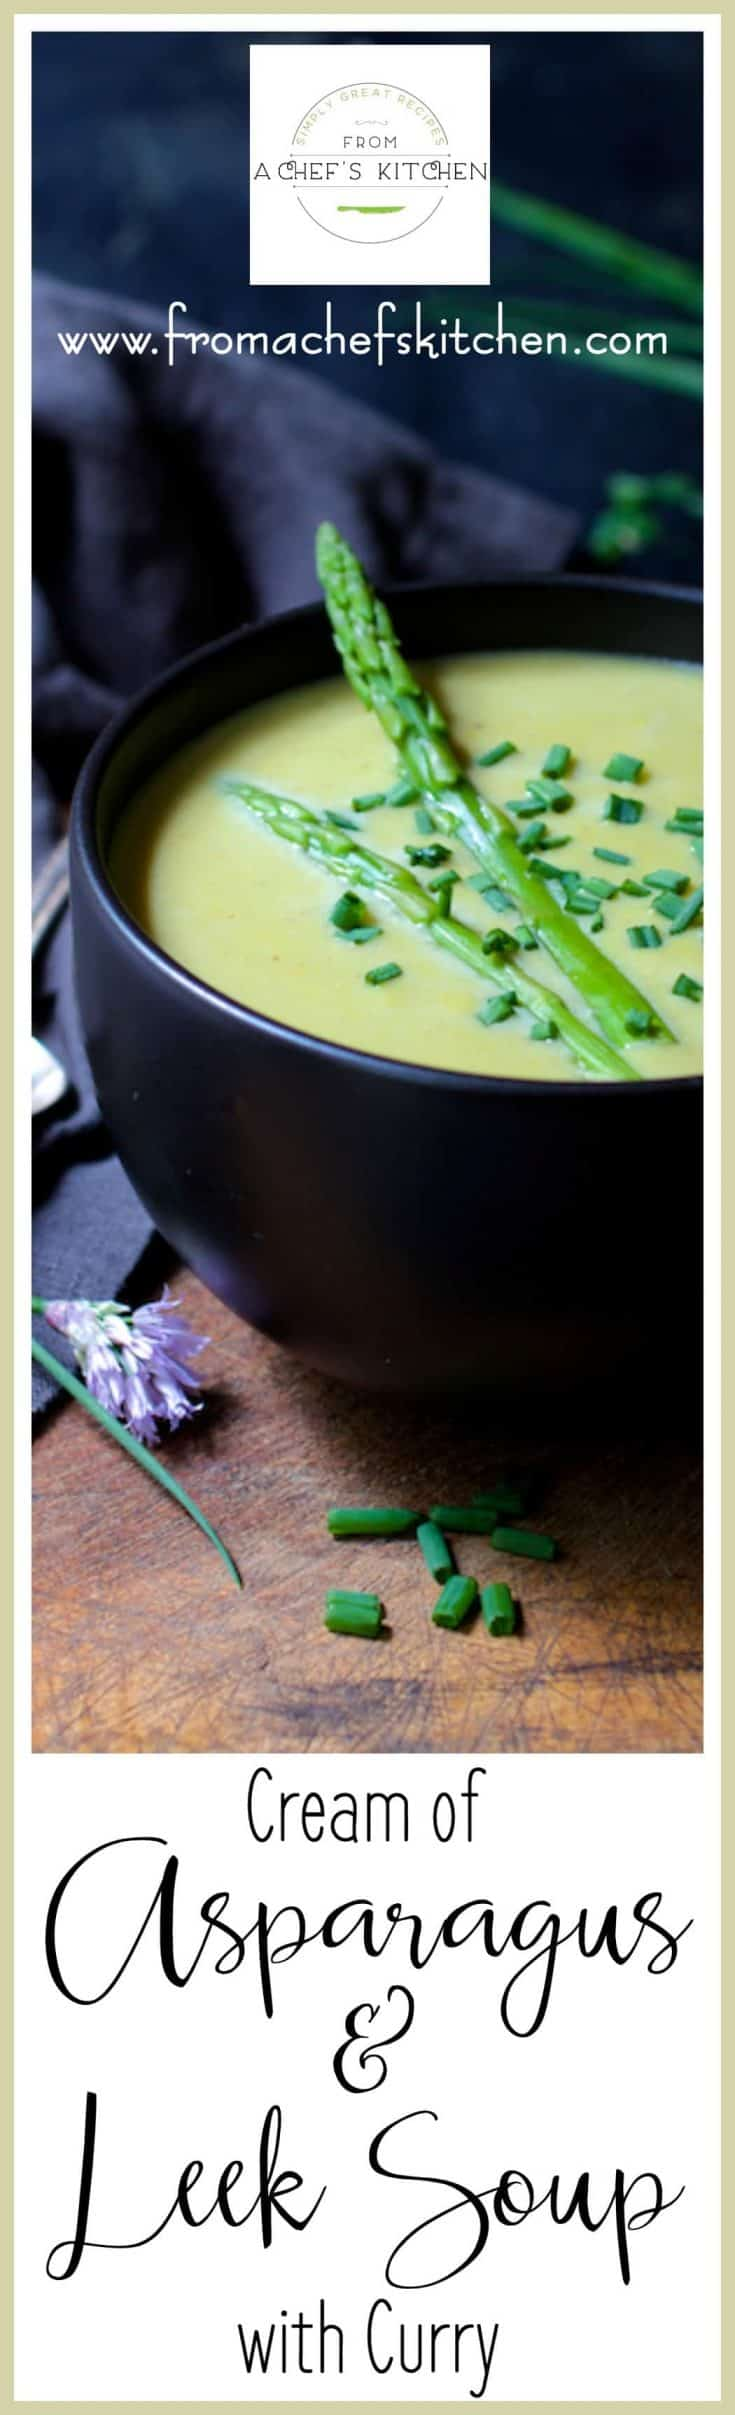 Cream of Asparagus and Leek Soup with Curry makes a beautiful starter for an elegant late spring dinner or as part of a light lunch. #asparagus #asparagussoup #soup